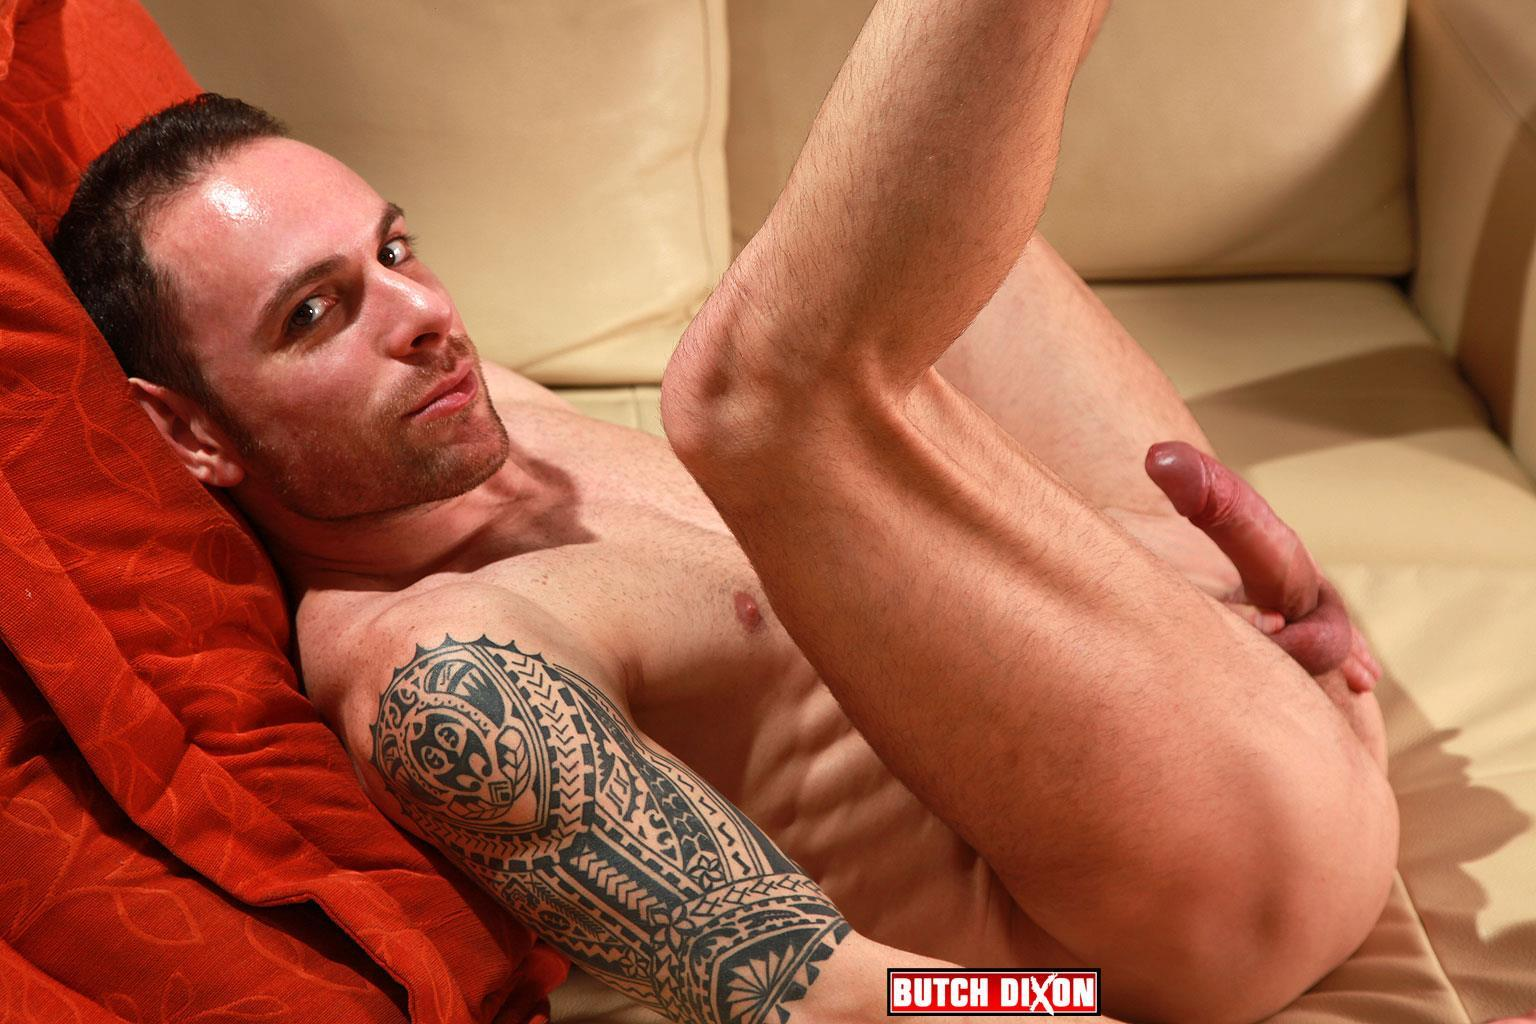 Butch-Dixon-Aitor-Bravo-and-Craig-Daniel-Big-Uncut-Cock-Barebacking-Breeding-BBBH-Amateur-Gay-Porn-27 Craig Daniel Barebacking Aitor Bravo With His Huge Uncut Cock